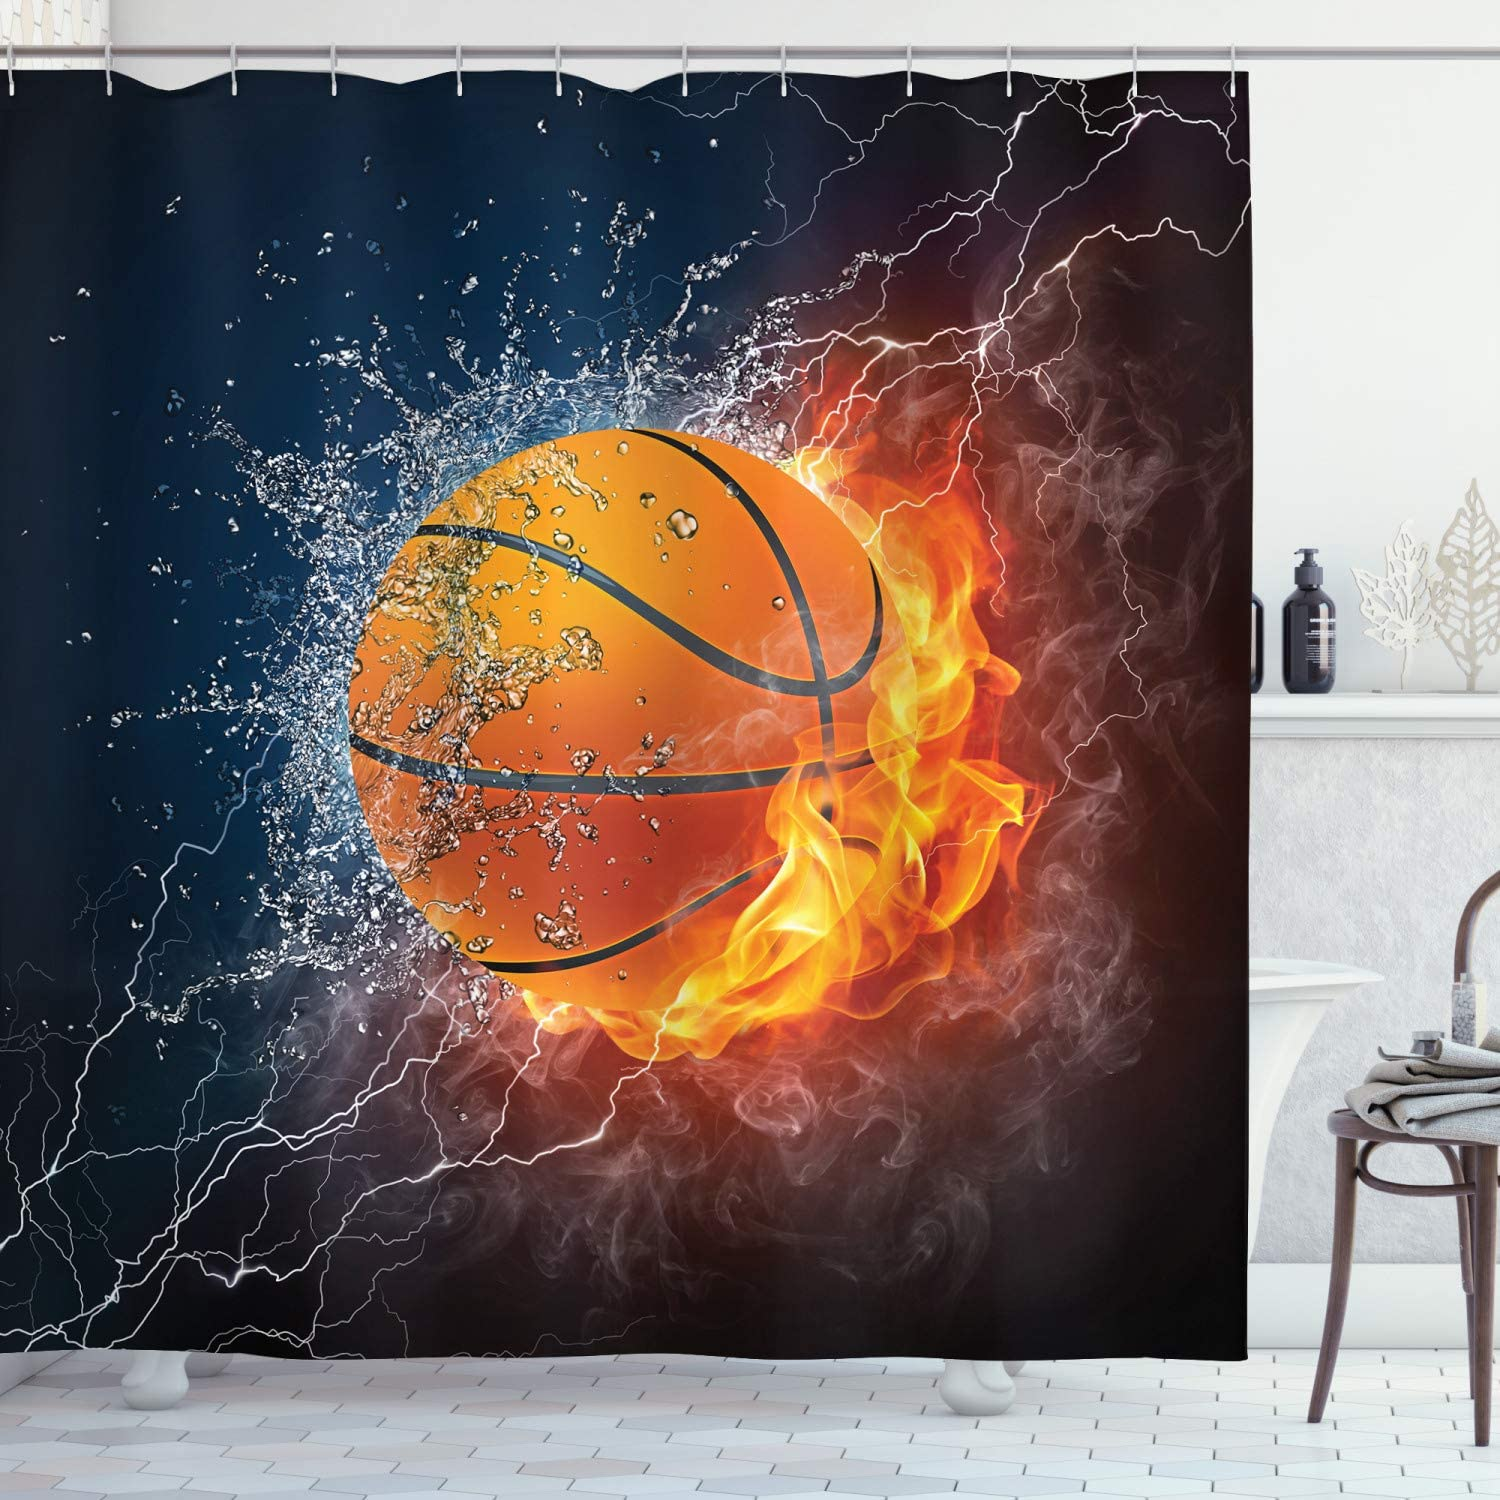 Ambesonne Sports Shower Curtain, Basketball Ball on Fire and Water Flame Splashing Thunder Lightning, Cloth Fabric Bathroom Decor Set with Hooks, 70